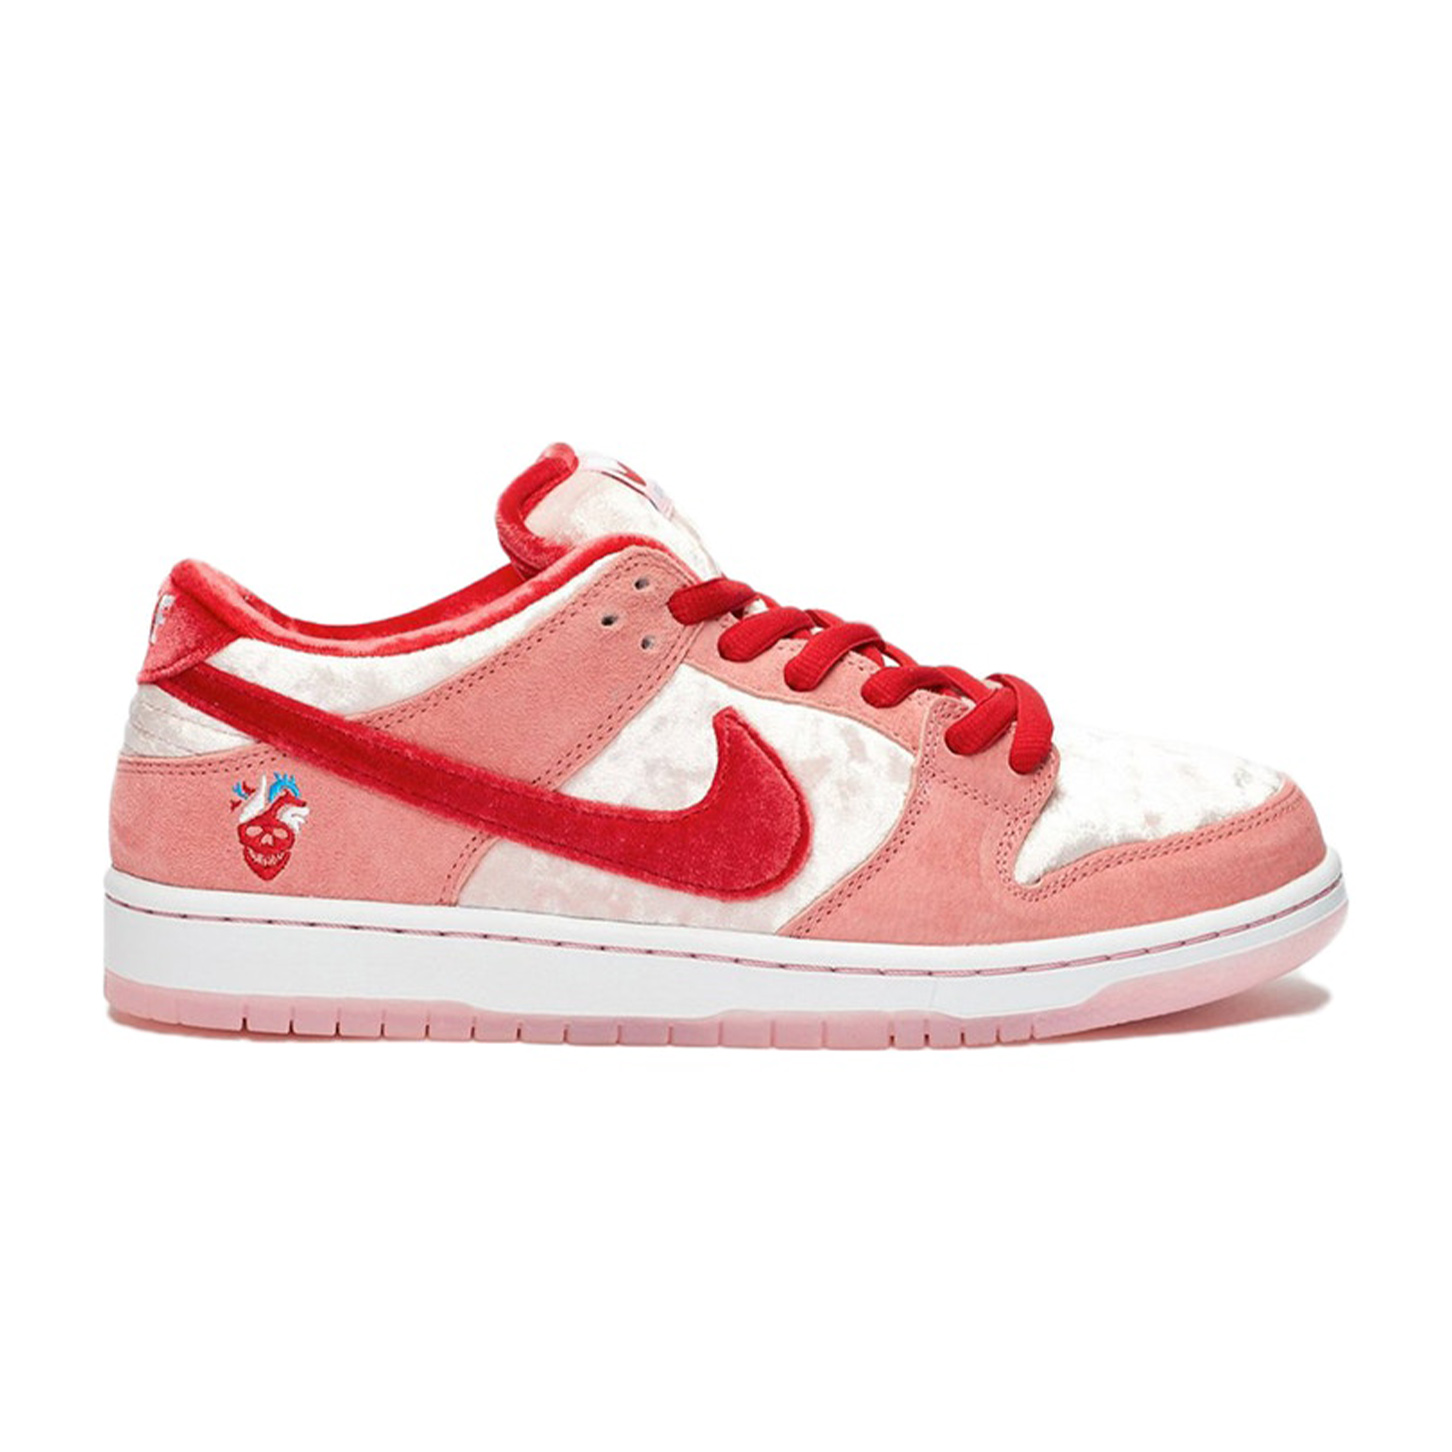 Nike-SB-Dunk-Low-StrangeLove-Skateboards